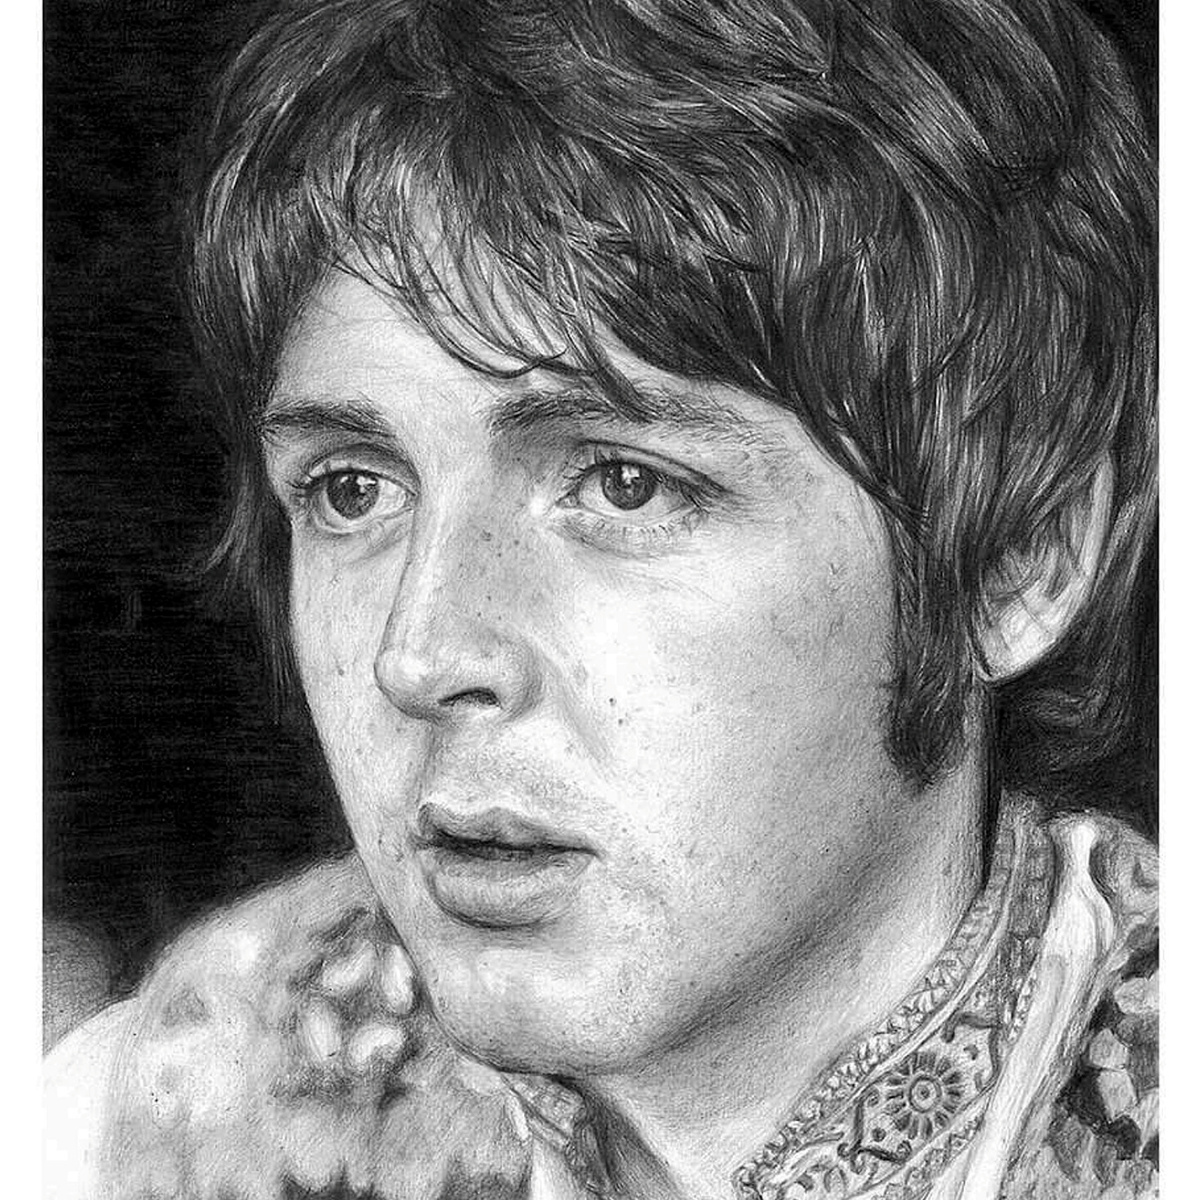 SWNS_BEATLES_DRAWINGS_01